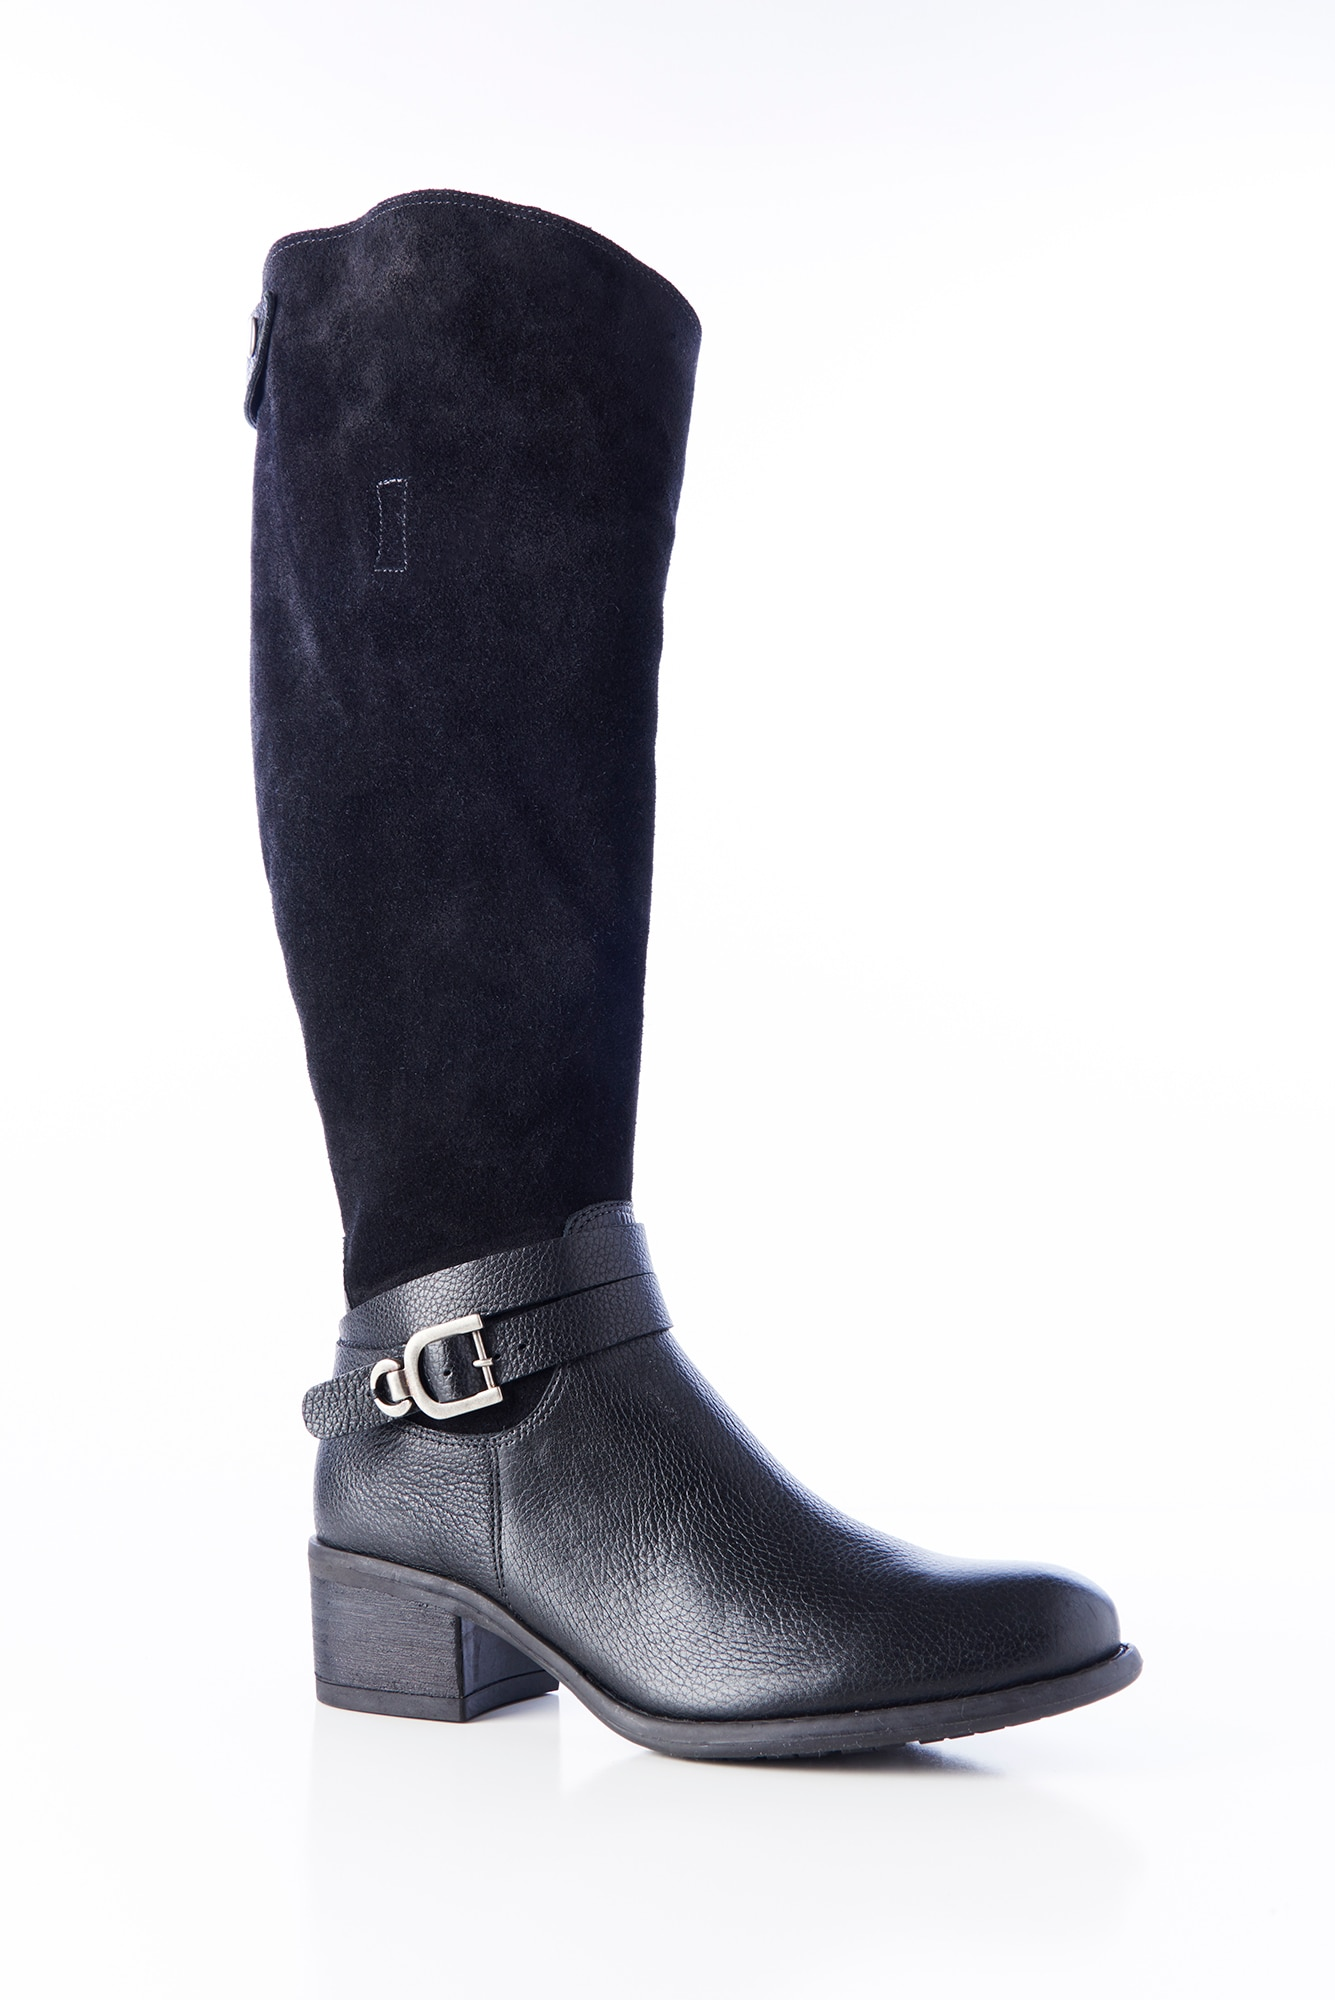 suede & leather riding boots in a wider width calf